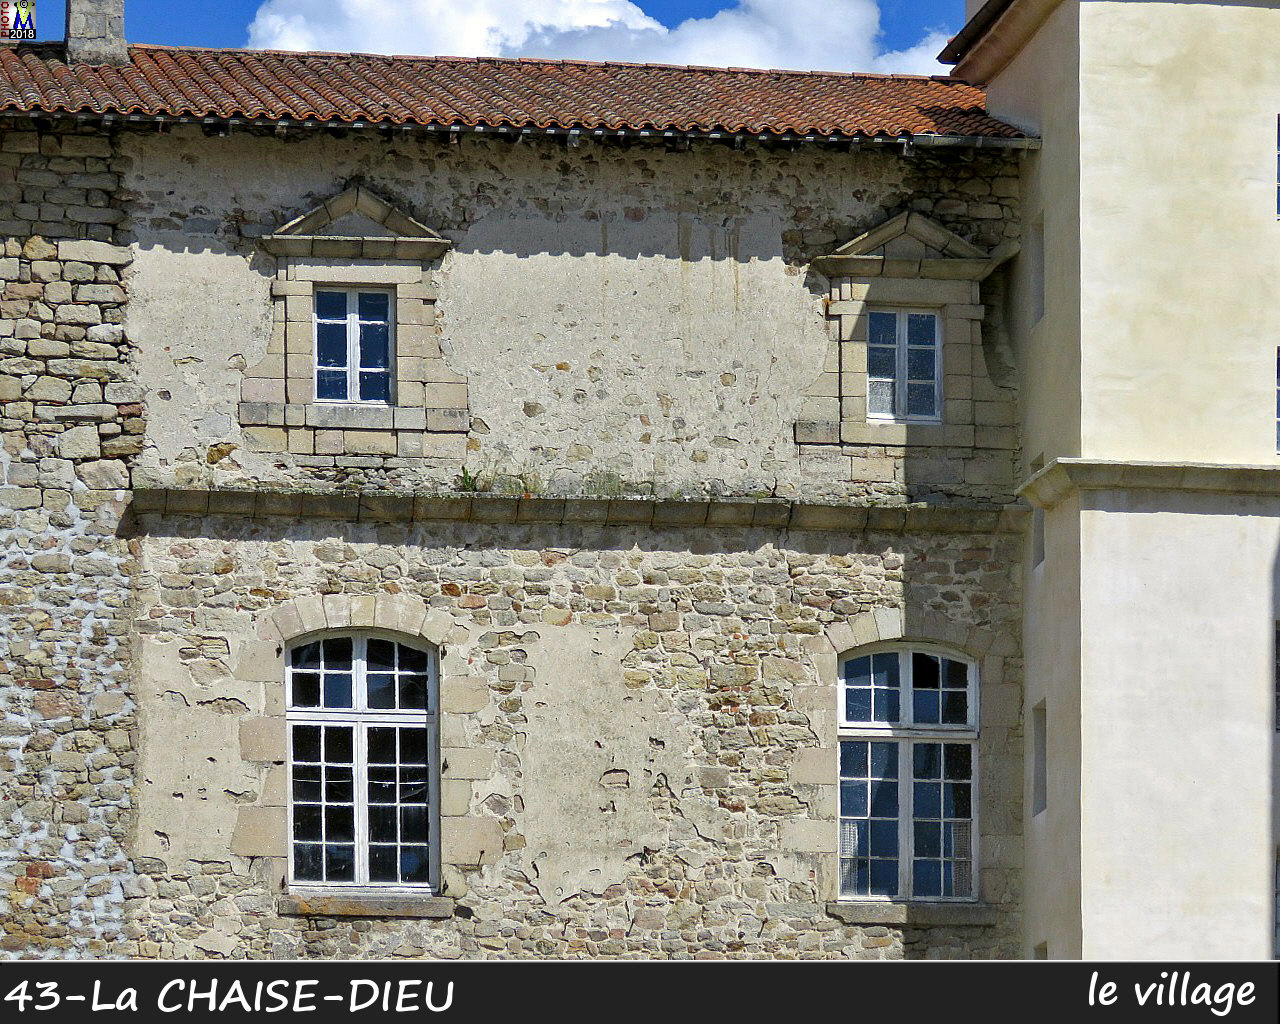 43CHAISE-DIEU_village_126.jpg